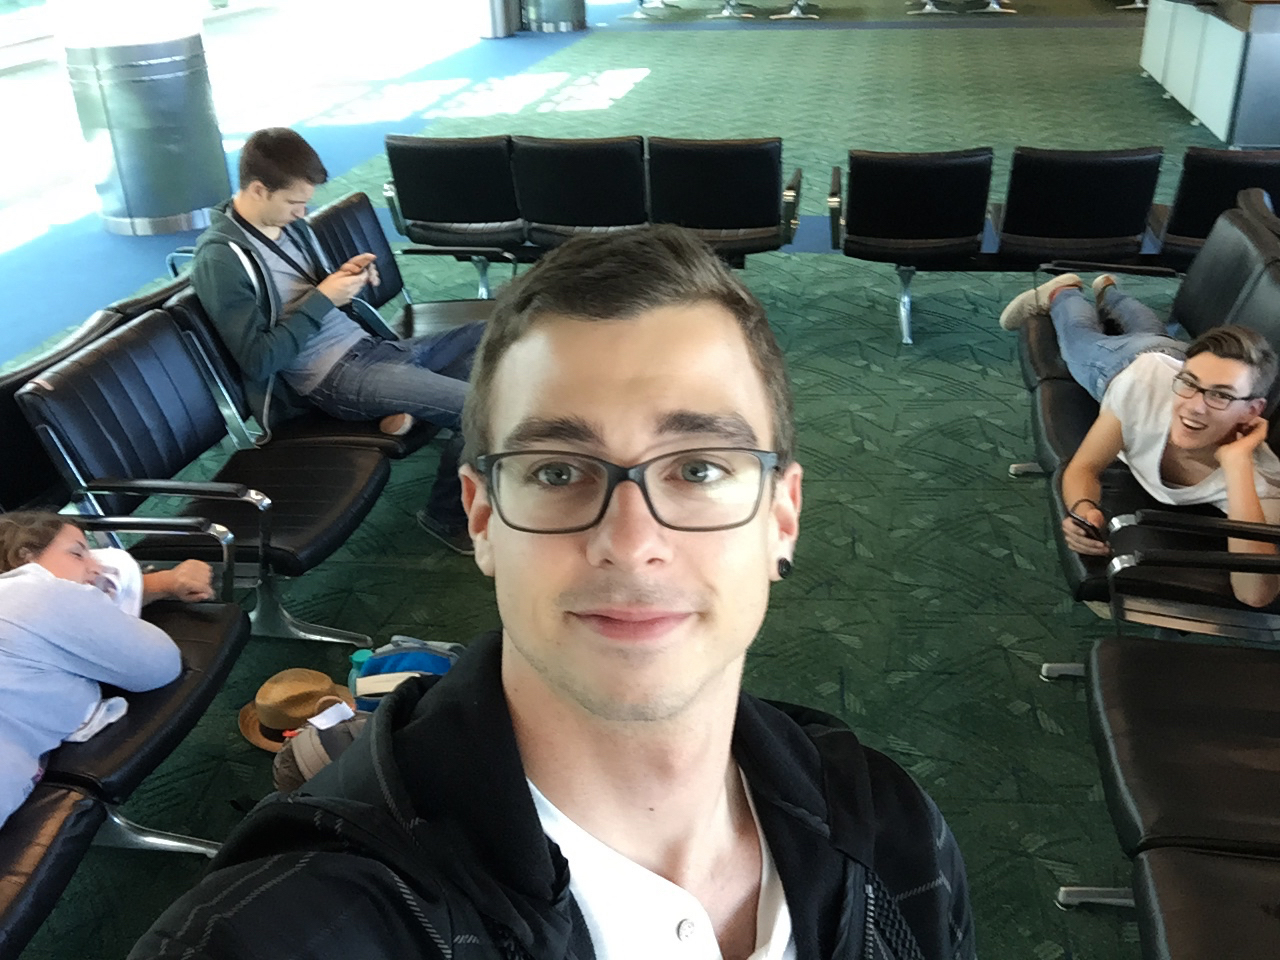 Ben & friends ready to board